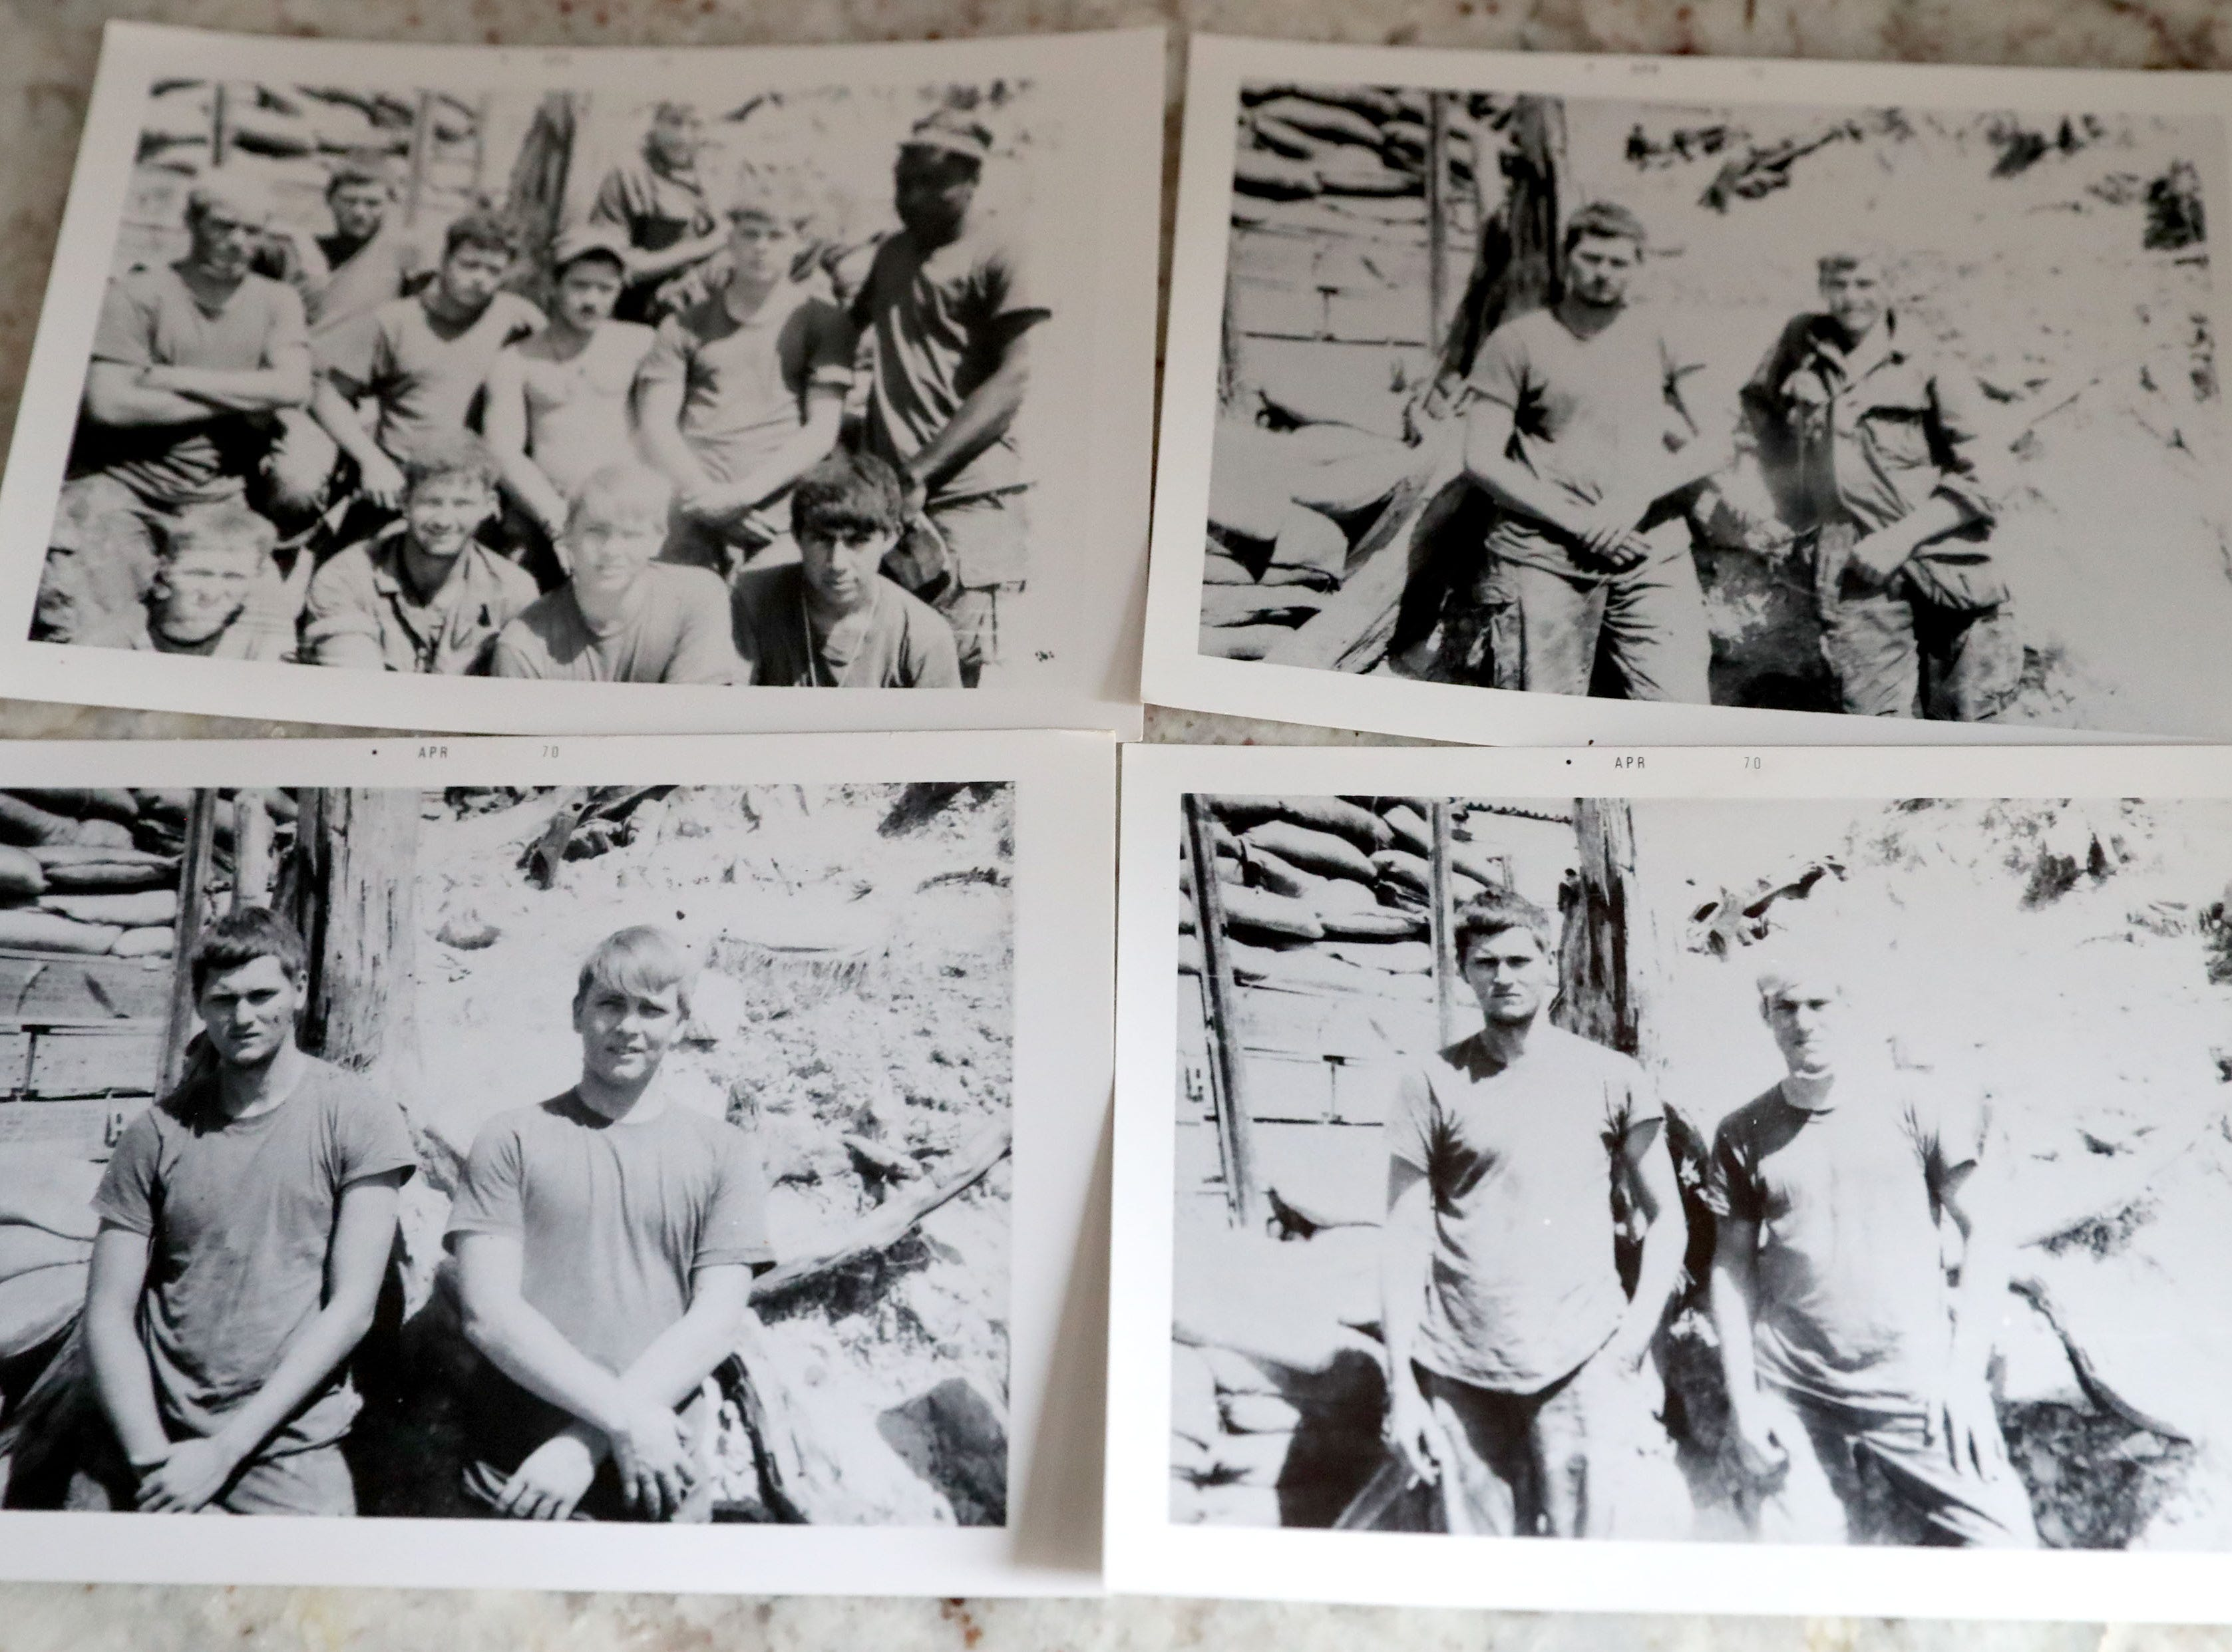 Photos of Wayne R. Thomas (secon left in top left photo and left in the remaining three photos), who was killed in Vietnam three days after his 20th birthday in 1969, is seen at the home of his childhood friend, Gary Weckworth, at Weckworth's home in Glendale. The photos of Thomas are from 1969 while on duty in Vietnam.